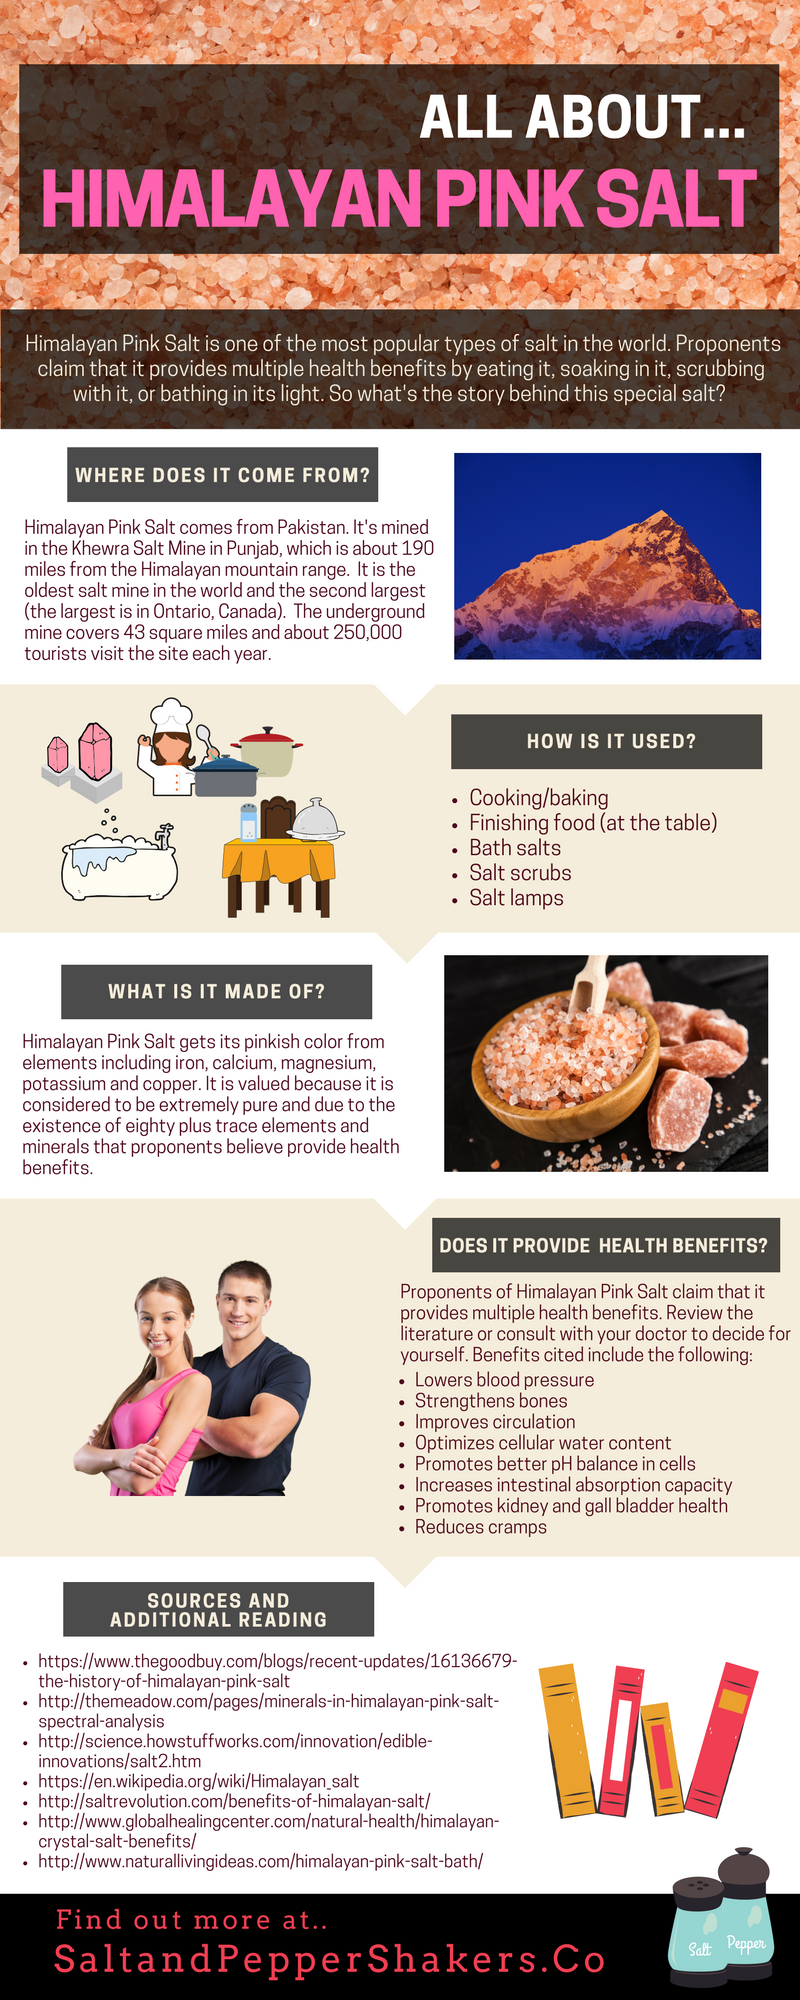 Himalayan Salt Lamp Benefits Wikipedia Interesting All About Himalayan Pink Salt Infographic  Himalayan Pink Salt Design Inspiration